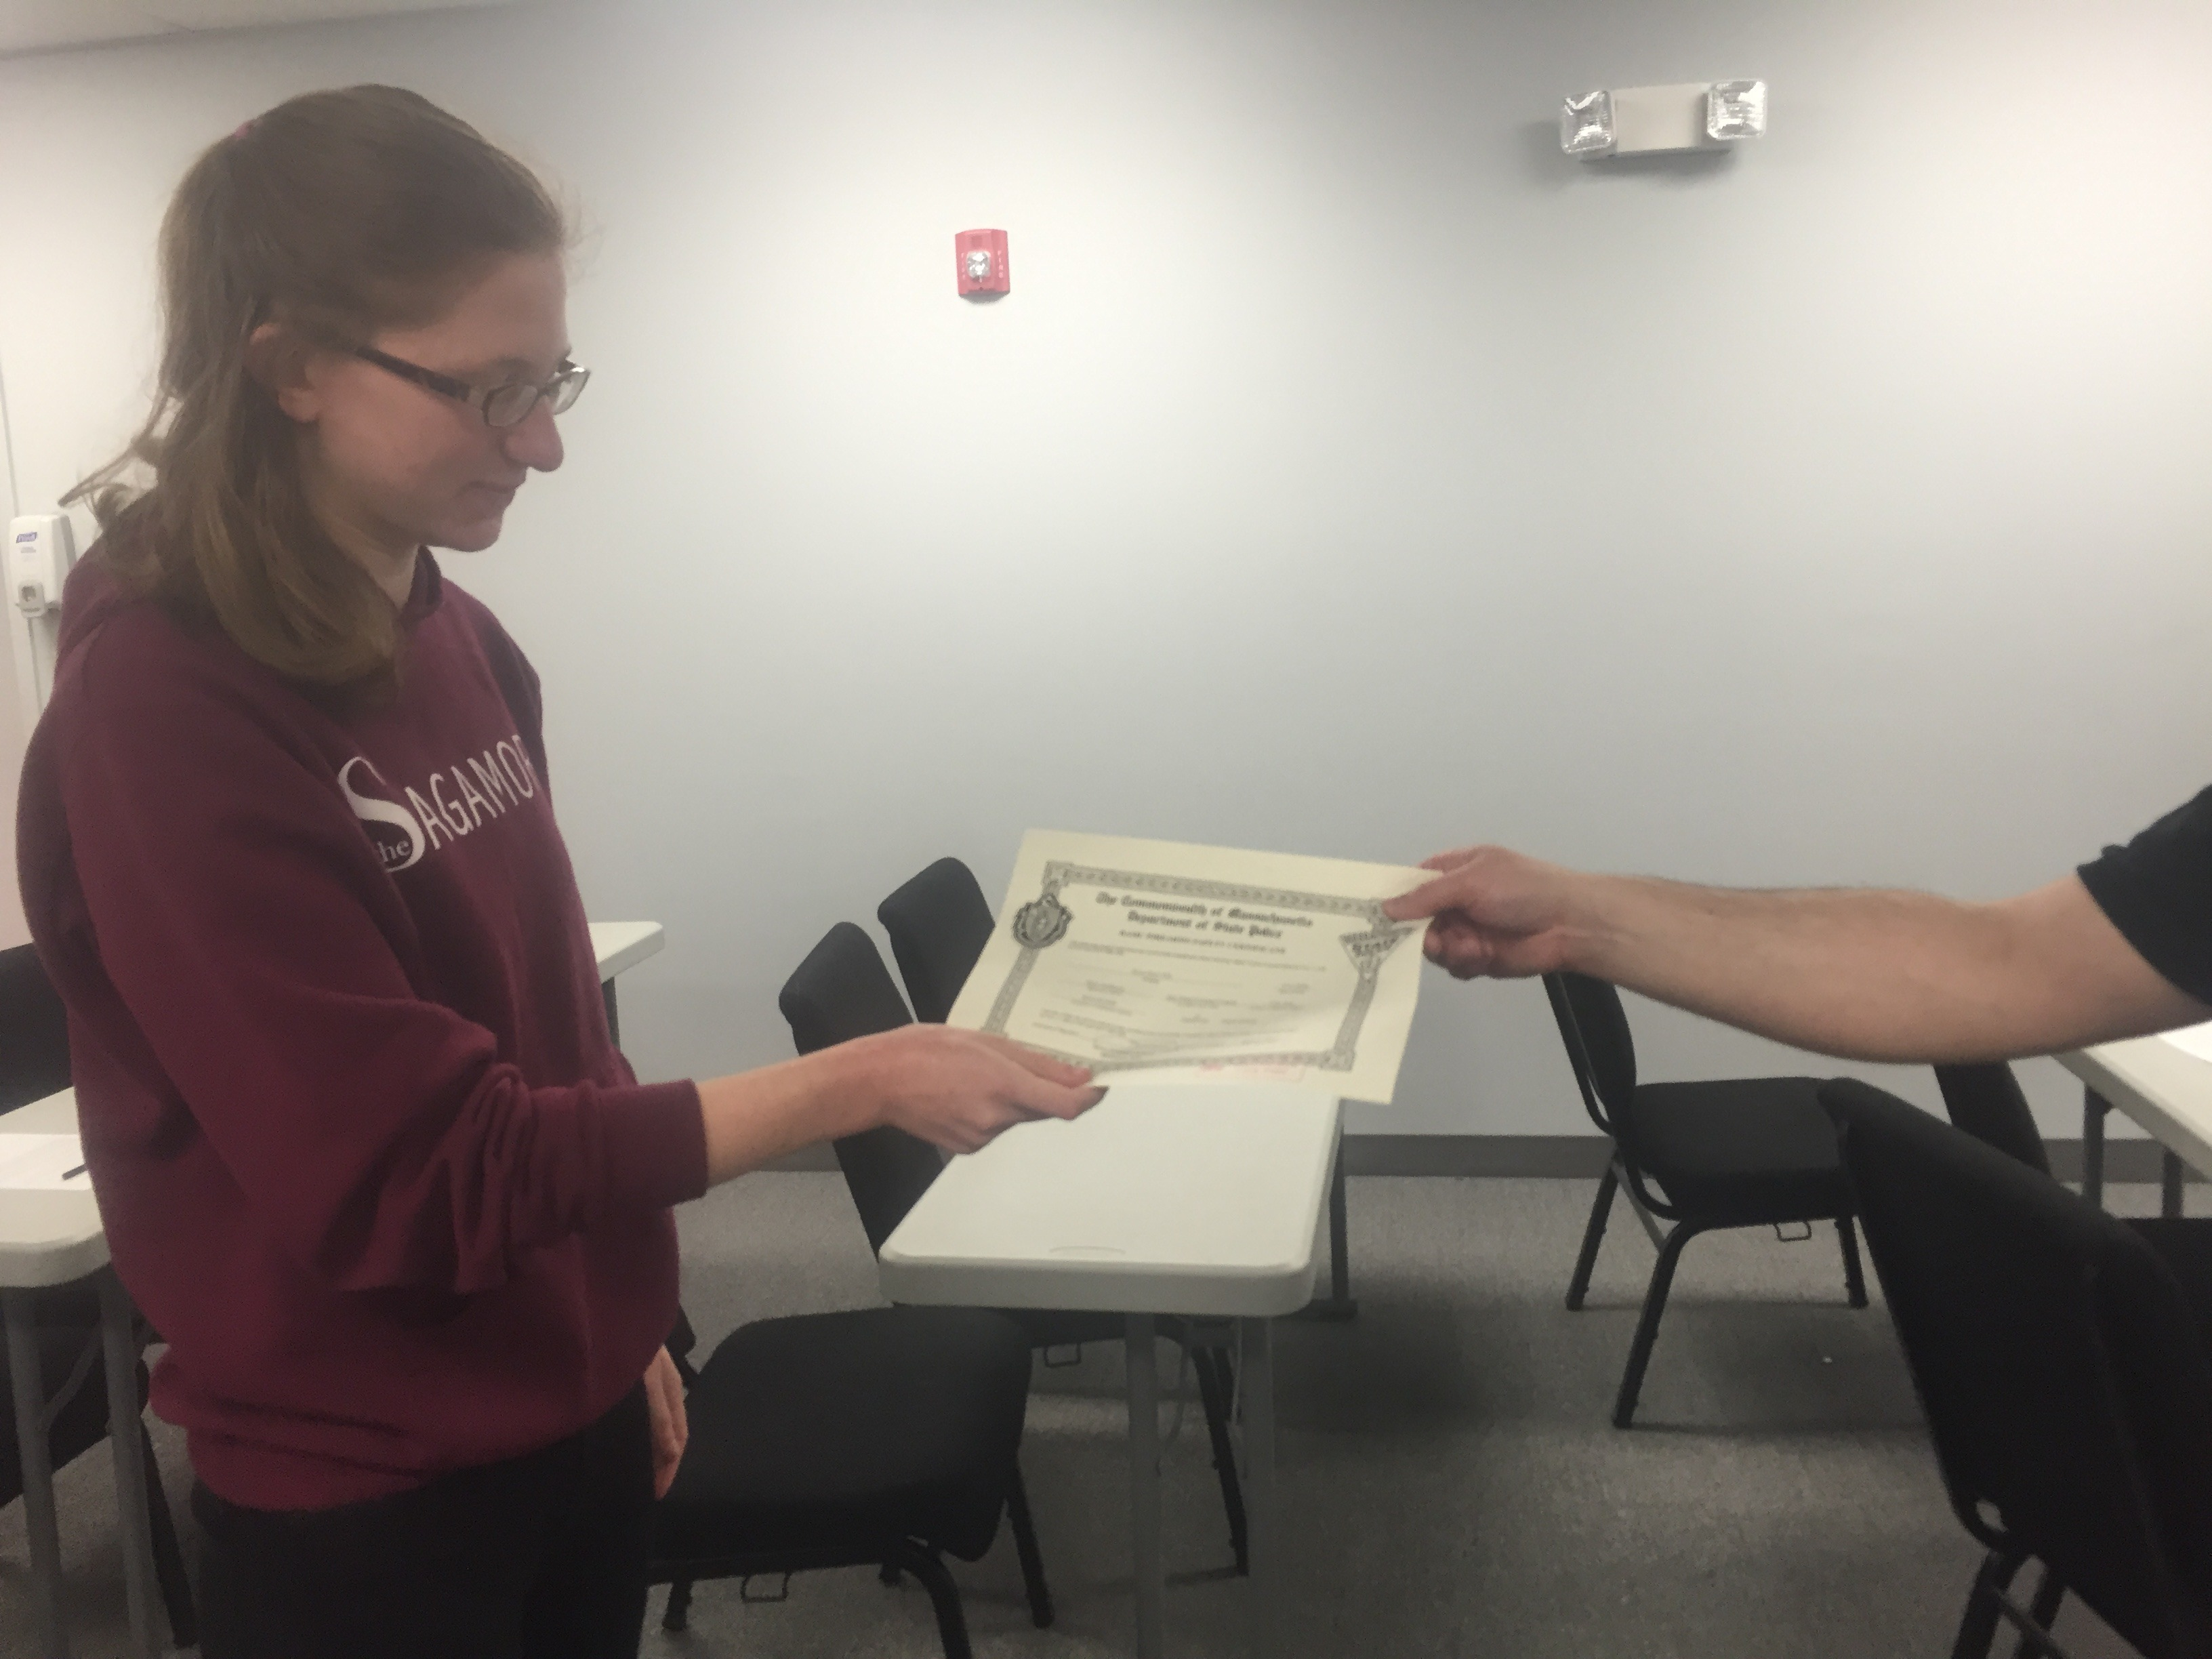 A Sagamore reporter receives her certificate from the instructor at the end of the Basic Firearms Safety Course.